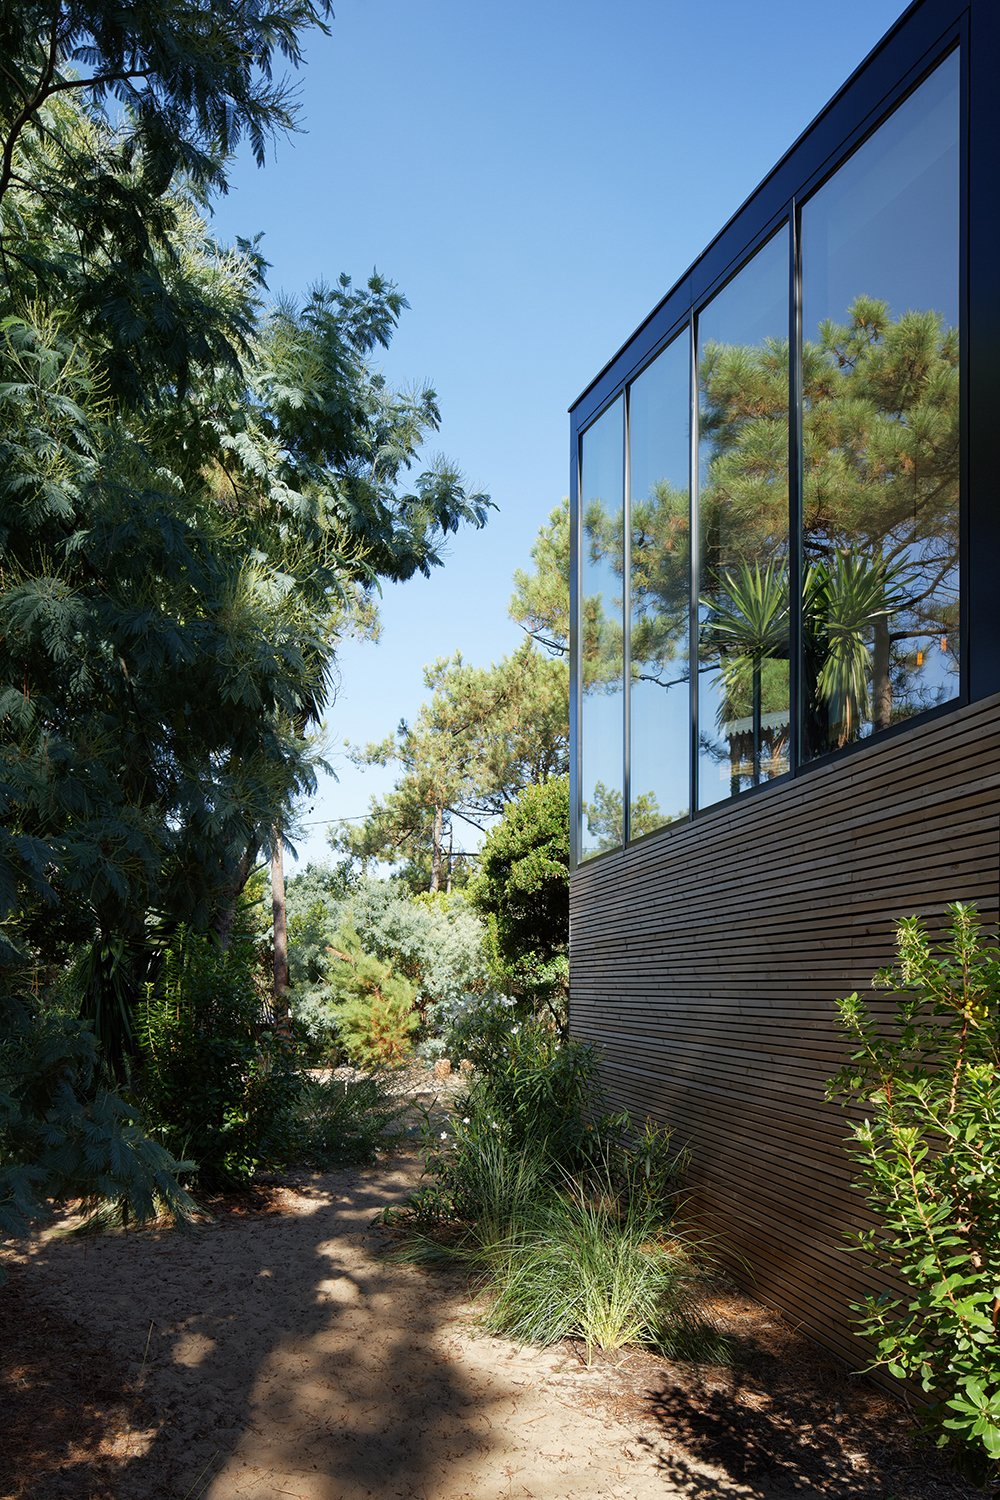 Minimal materials allow the dwelling to blend kindly into the surroundings, while large amounts of glazing increase the connection between built form and nature.